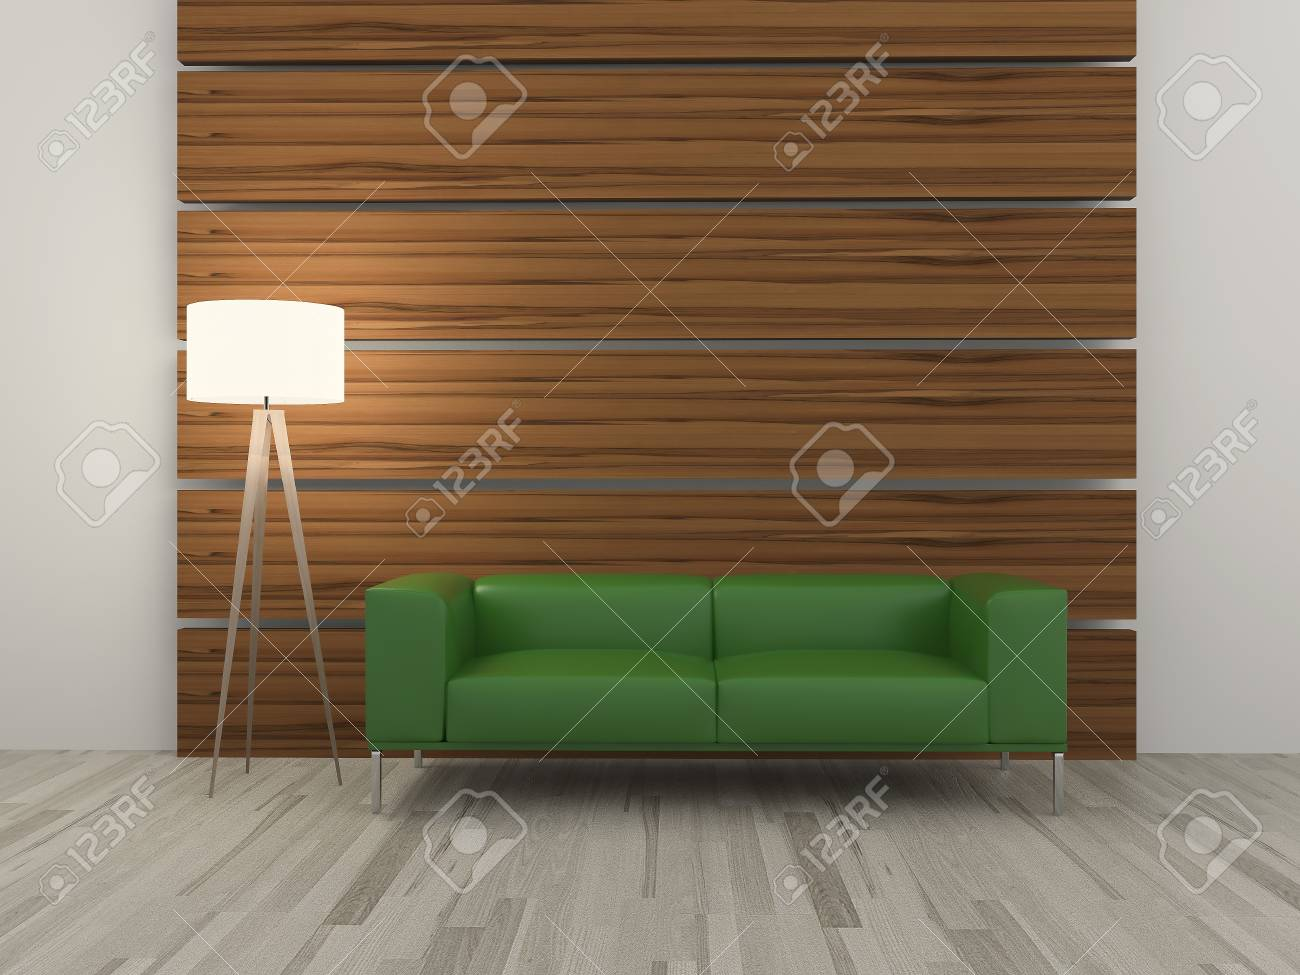 Image of a modern sofa 3D Stock Photo - 23022443